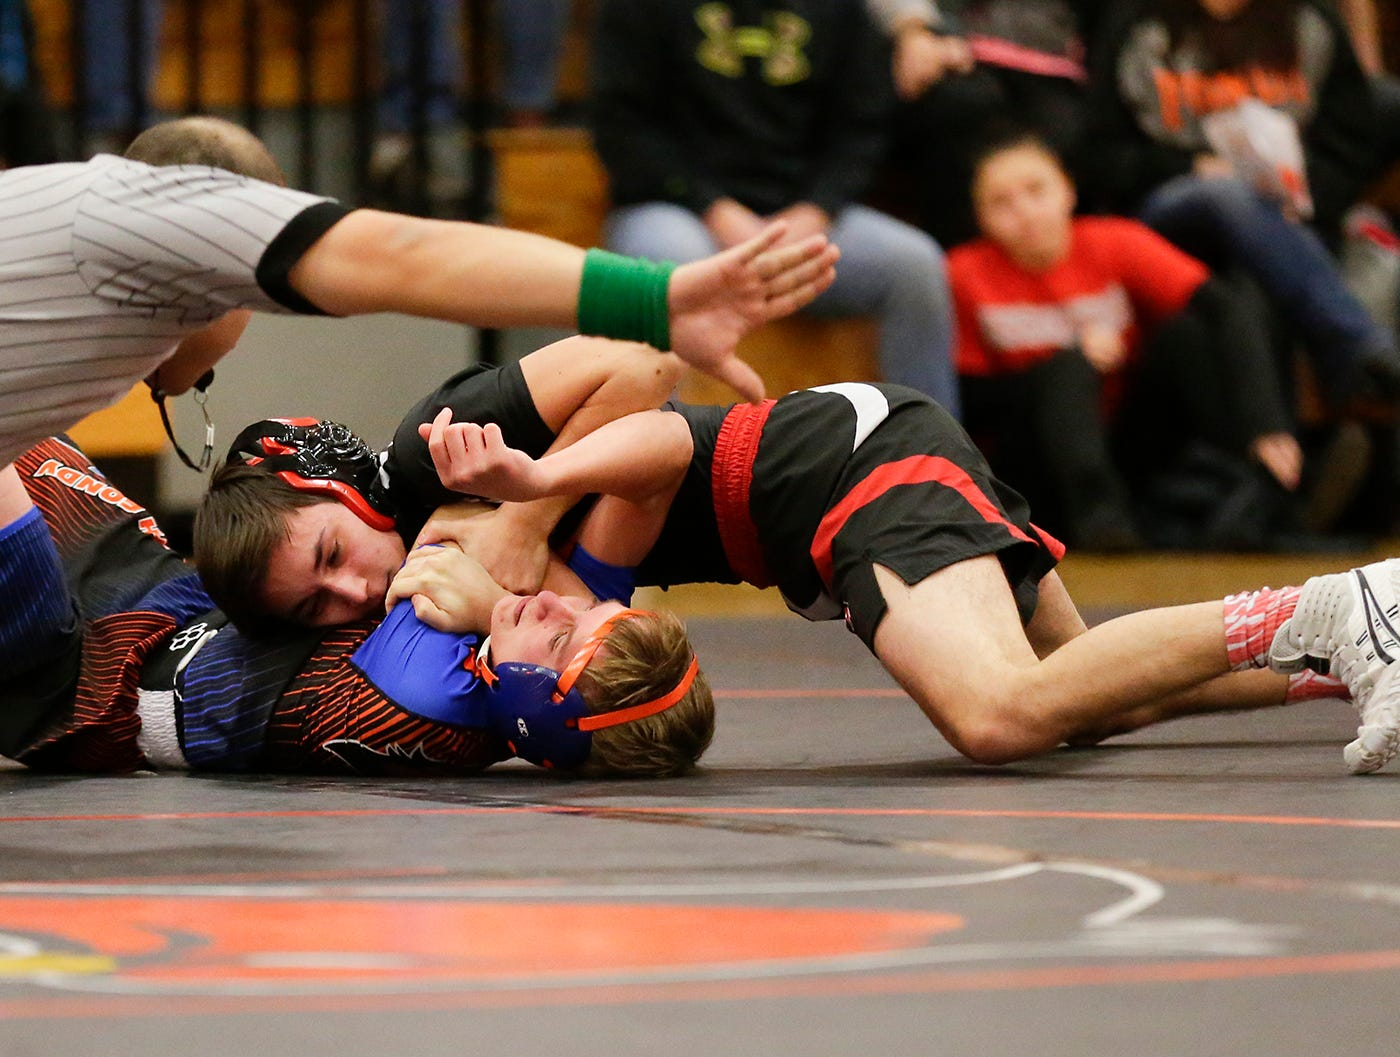 St. Mary's Springs Academy/North Fond du Lac High School wrestling's Zach Williams-Romero wrestles against Lomira High School's Carlos Lopez during their 106 pound weight class match in North Fond du Lac. Lopez won the match by a pin and Springs/North Fond du Lac won the meet 48-28. Doug Raflik/USA TODAY NETWORK-Wisconsin